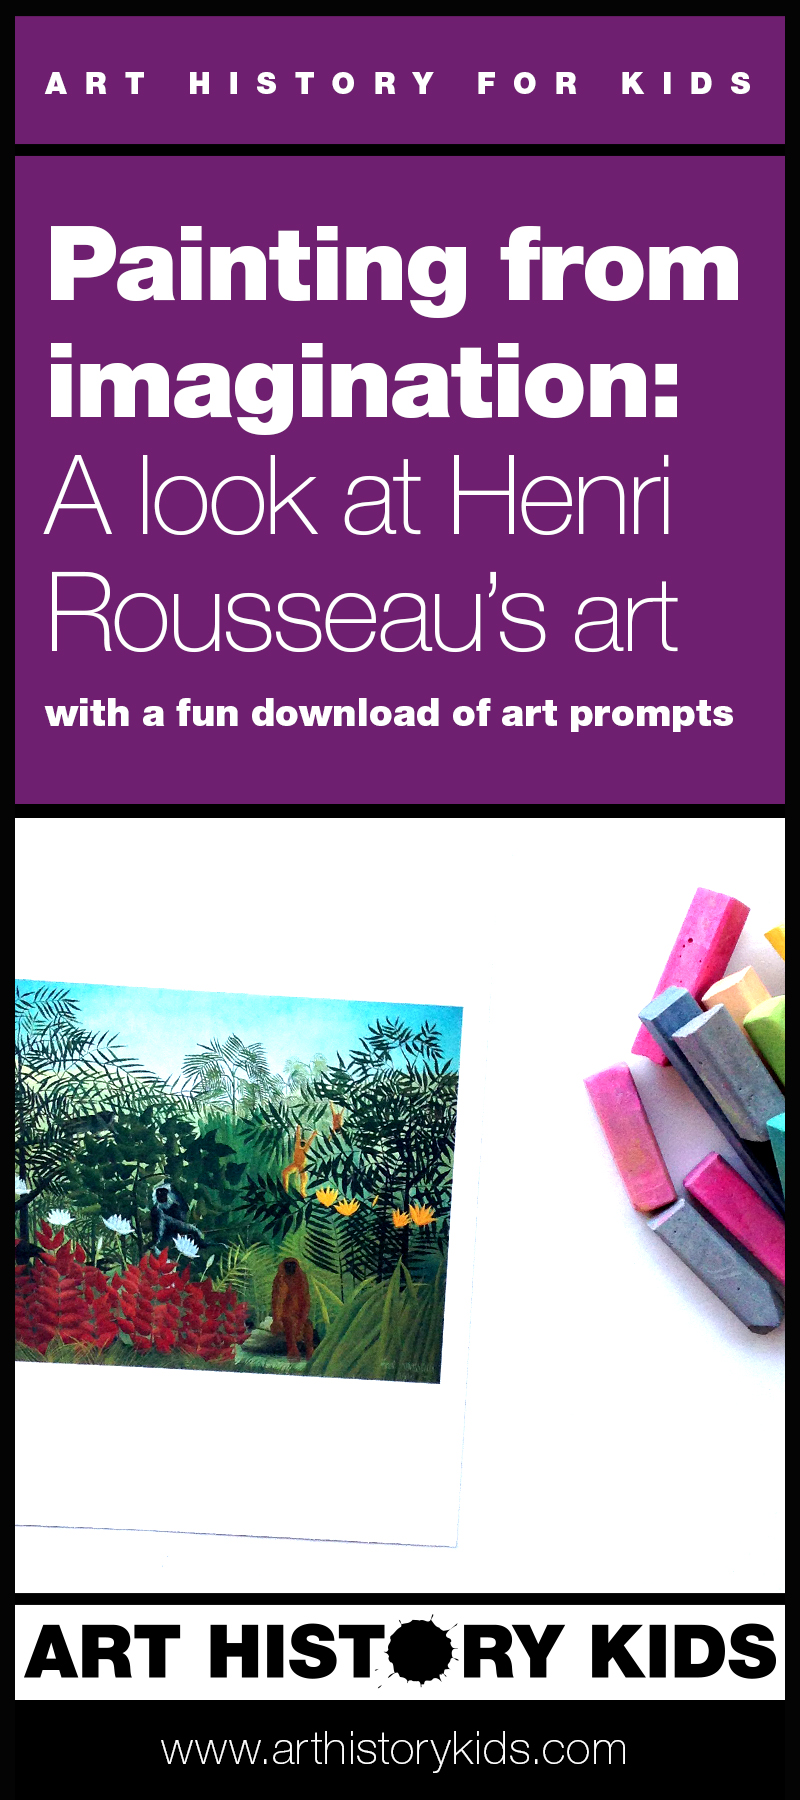 Take an imaginary trip to the tropics, and then paint your adventure! Study Henri Rousseau with your kids, and learn about creative visualization in art!